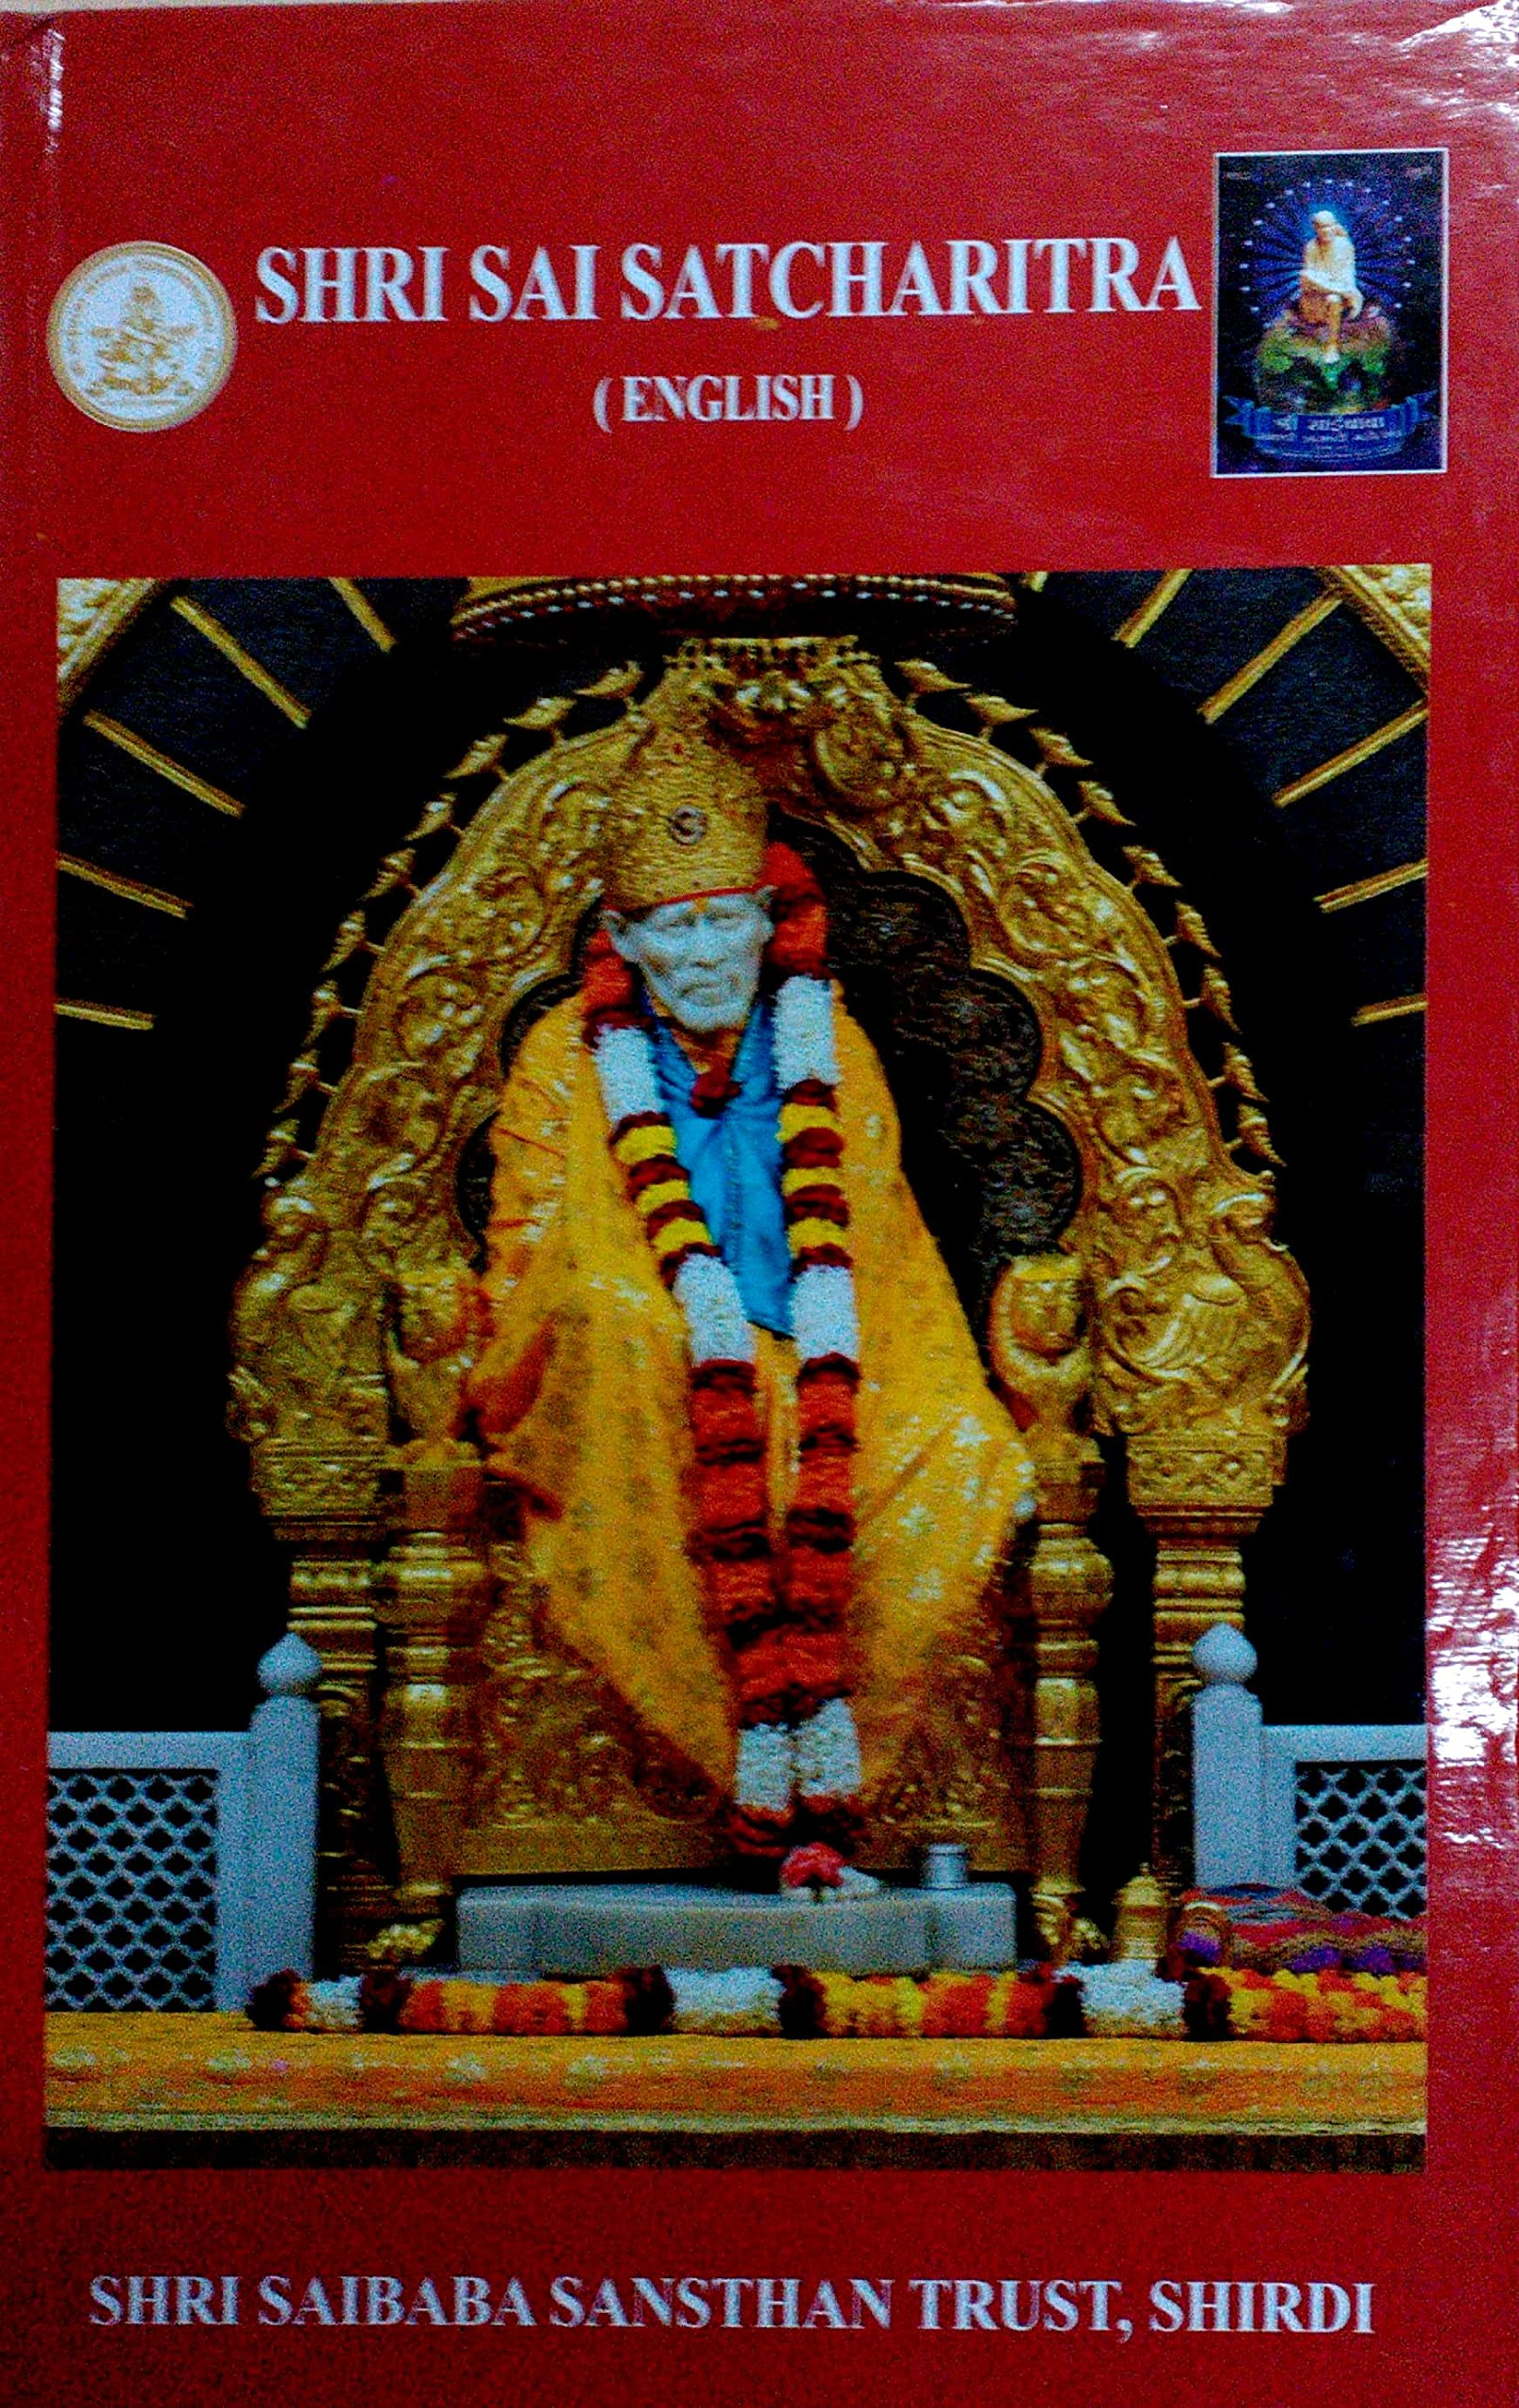 Buy Sai Satcharitra Book - English Book Online at Low Prices